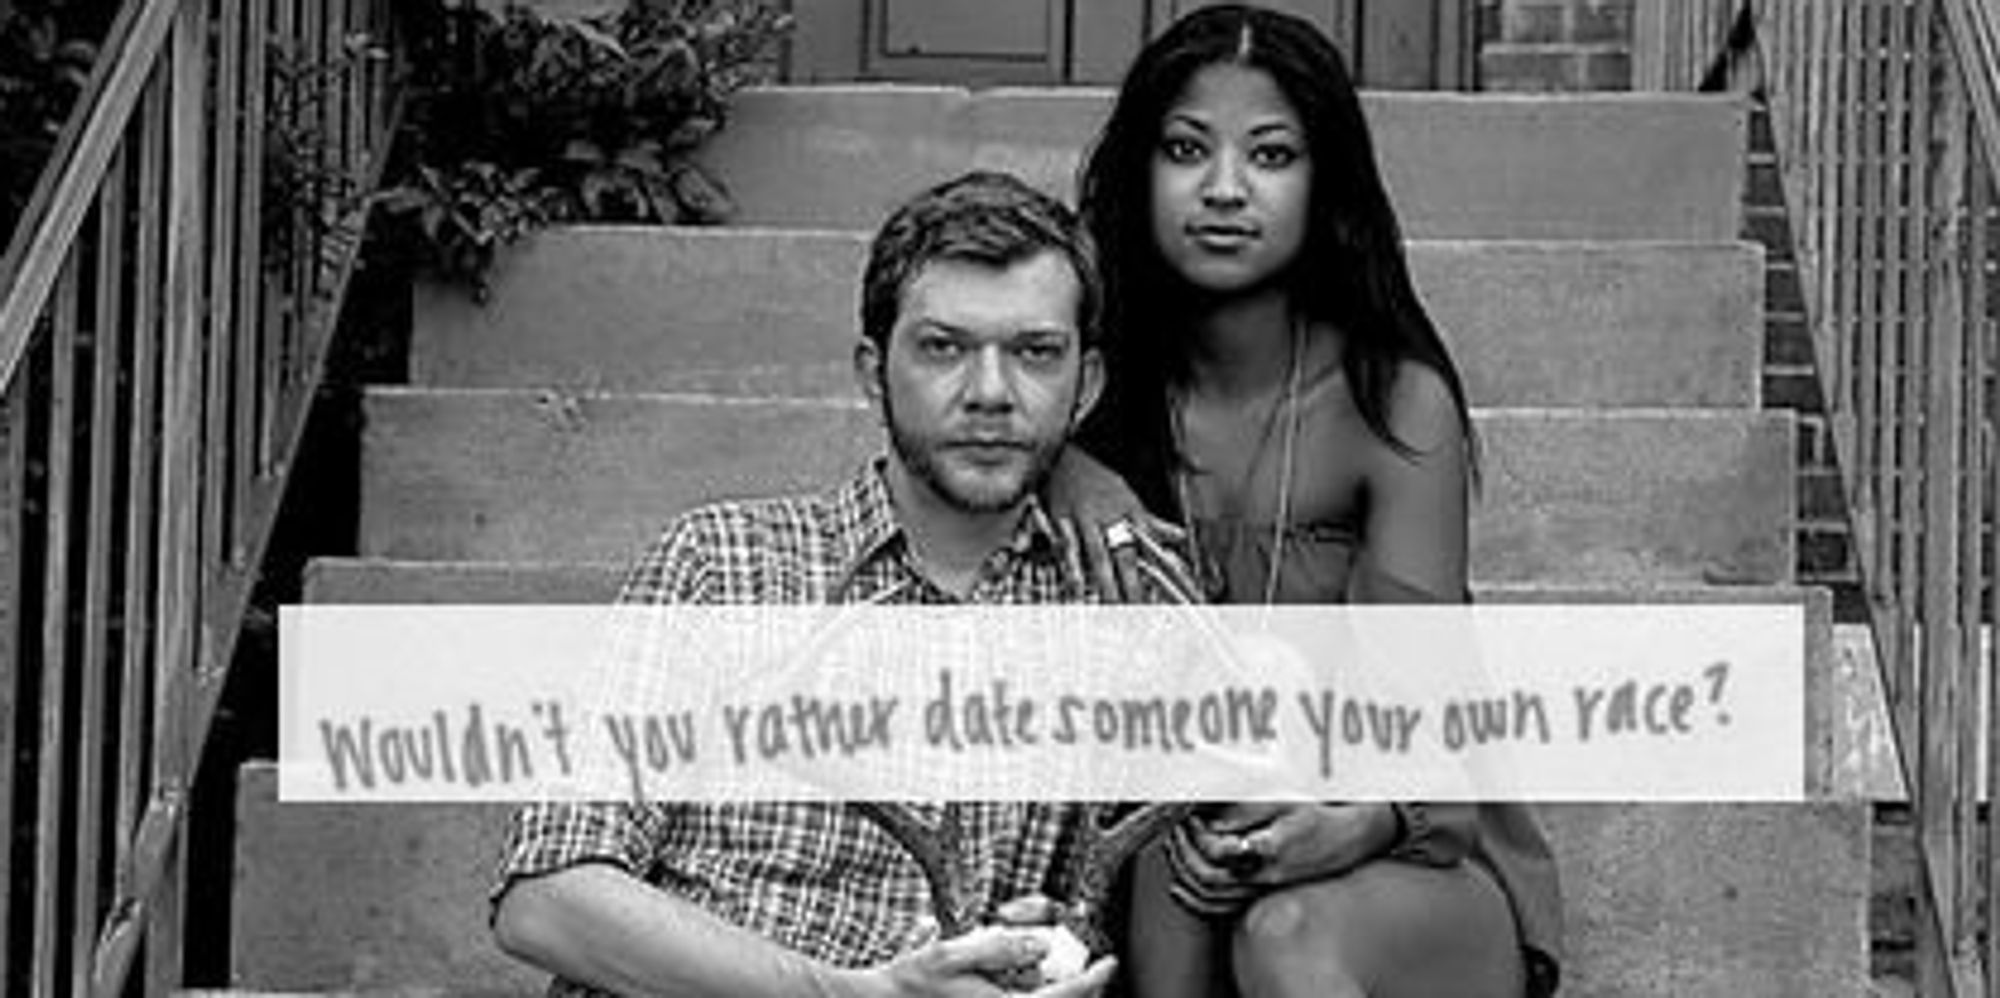 interracial couples share the insults they ve experienced in interracial couples share the insults they ve experienced in insightful photo series the huffington post